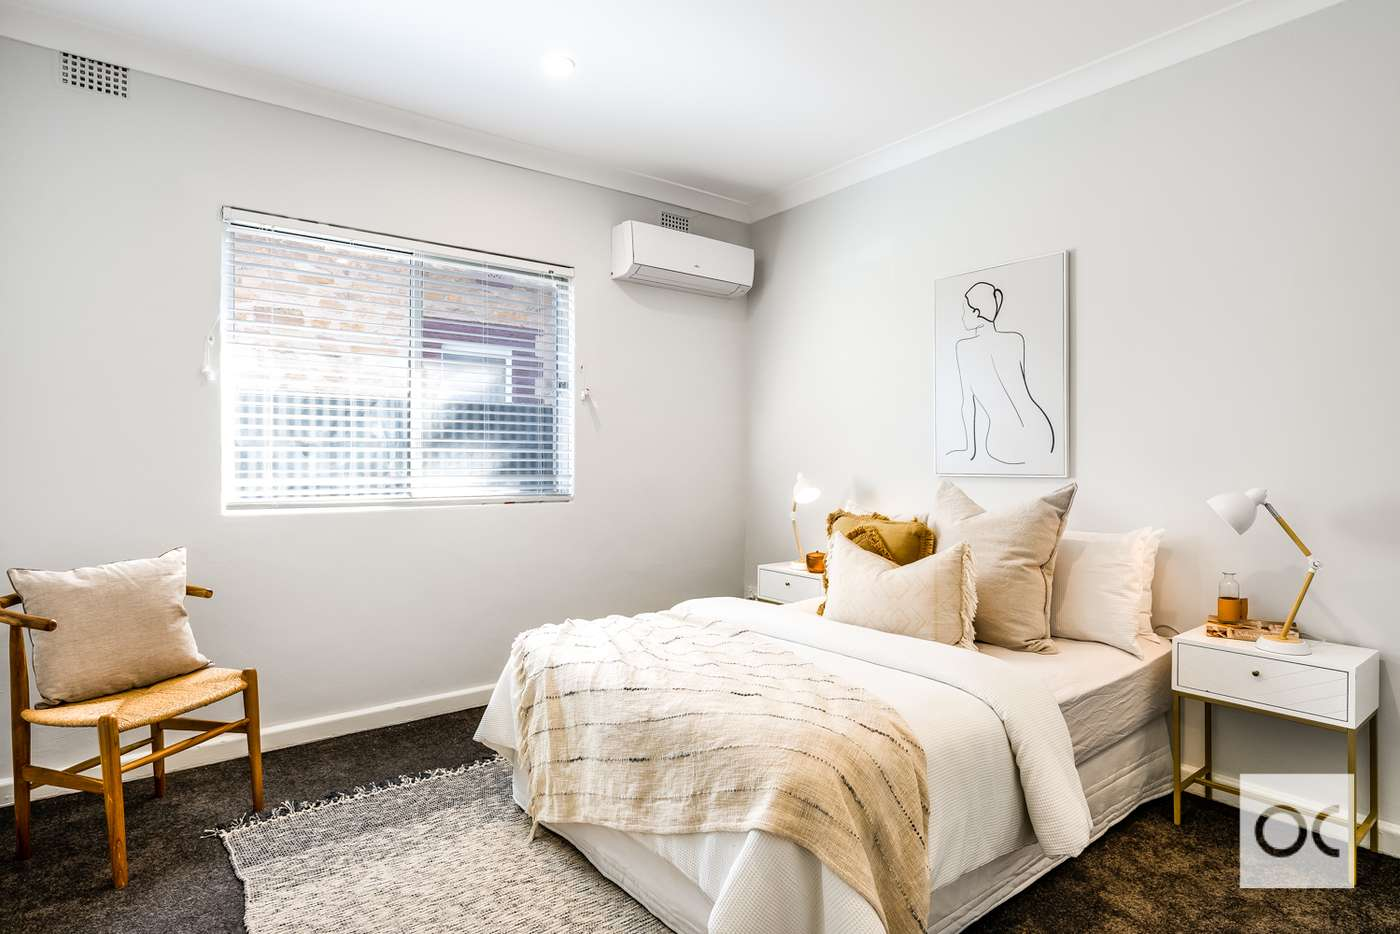 Fifth view of Homely house listing, 6 King Street, Mile End SA 5031